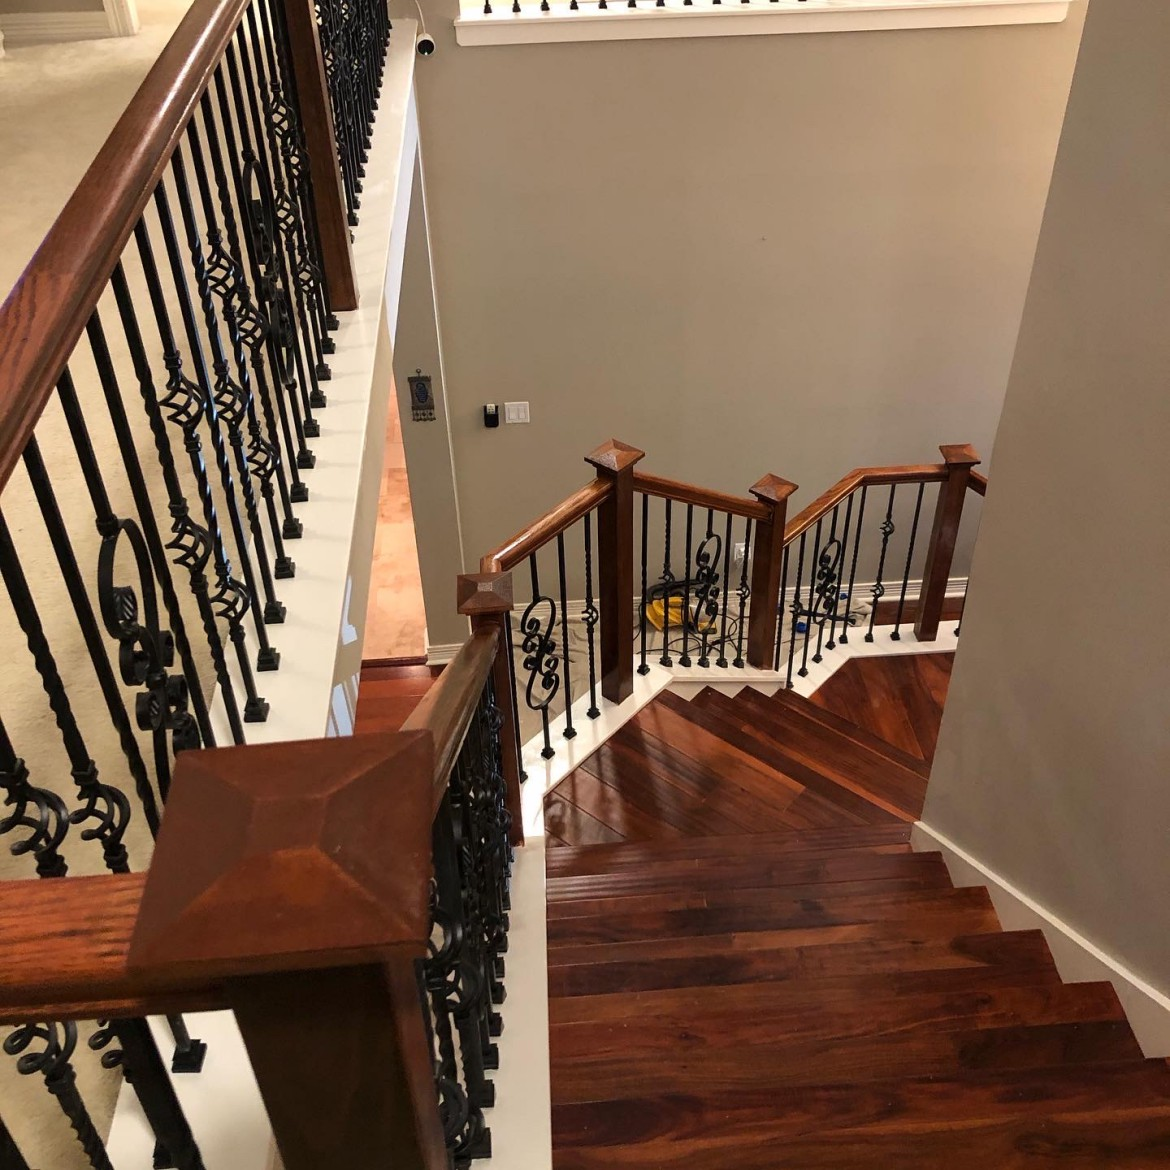 Project #23 - Sugar Land City Texas - Stair Balusters Remodeling